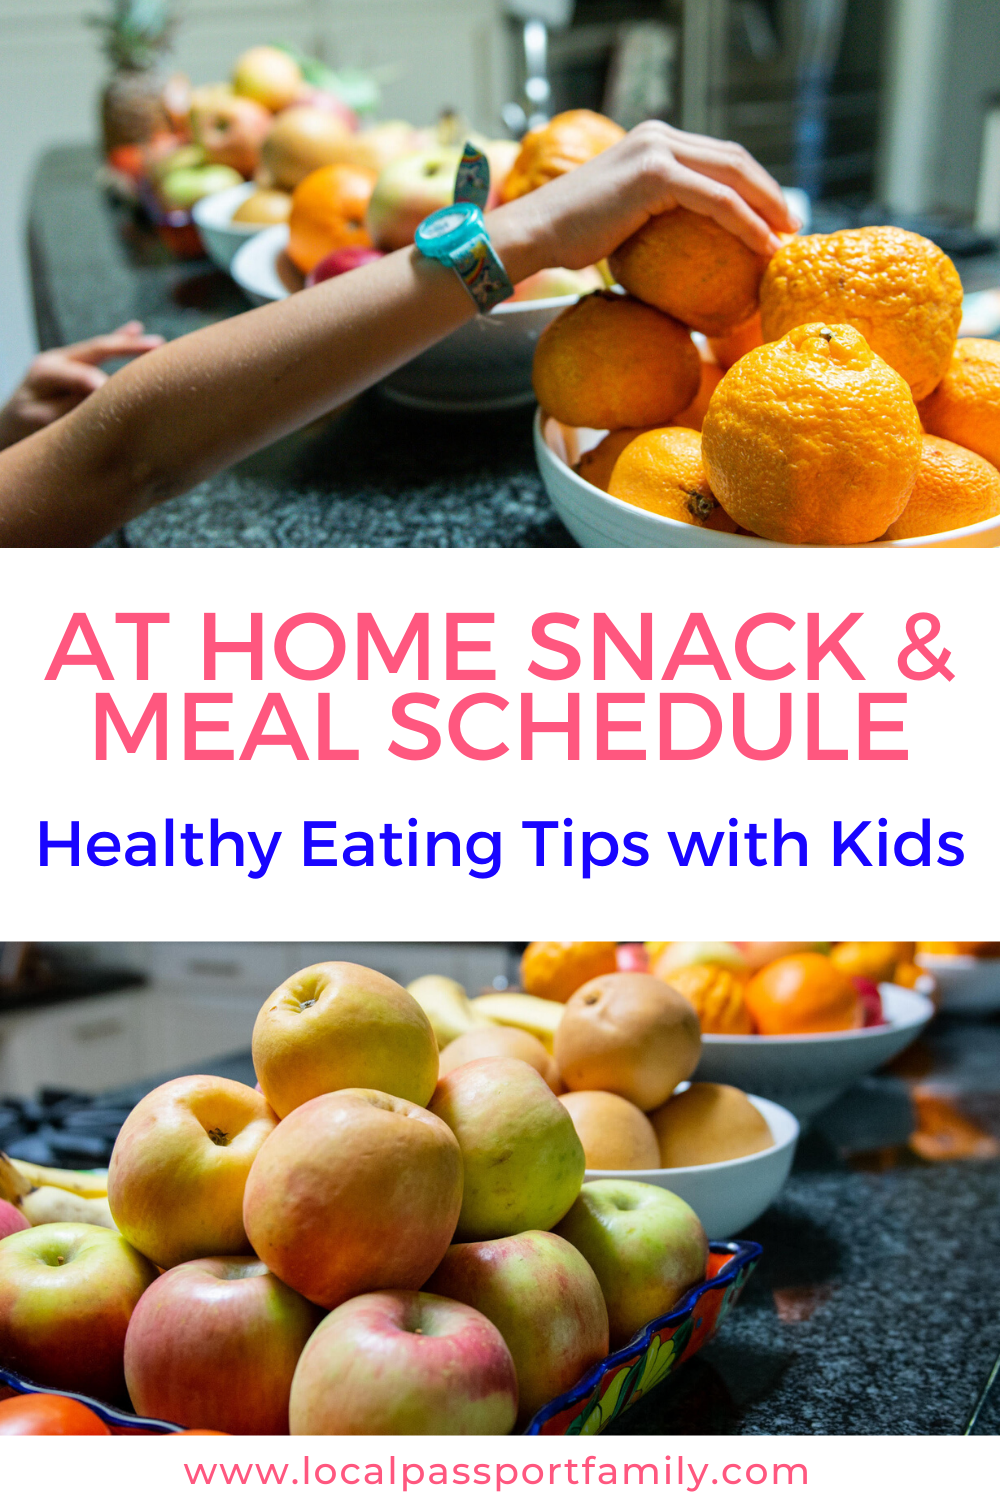 meal schedule with kids